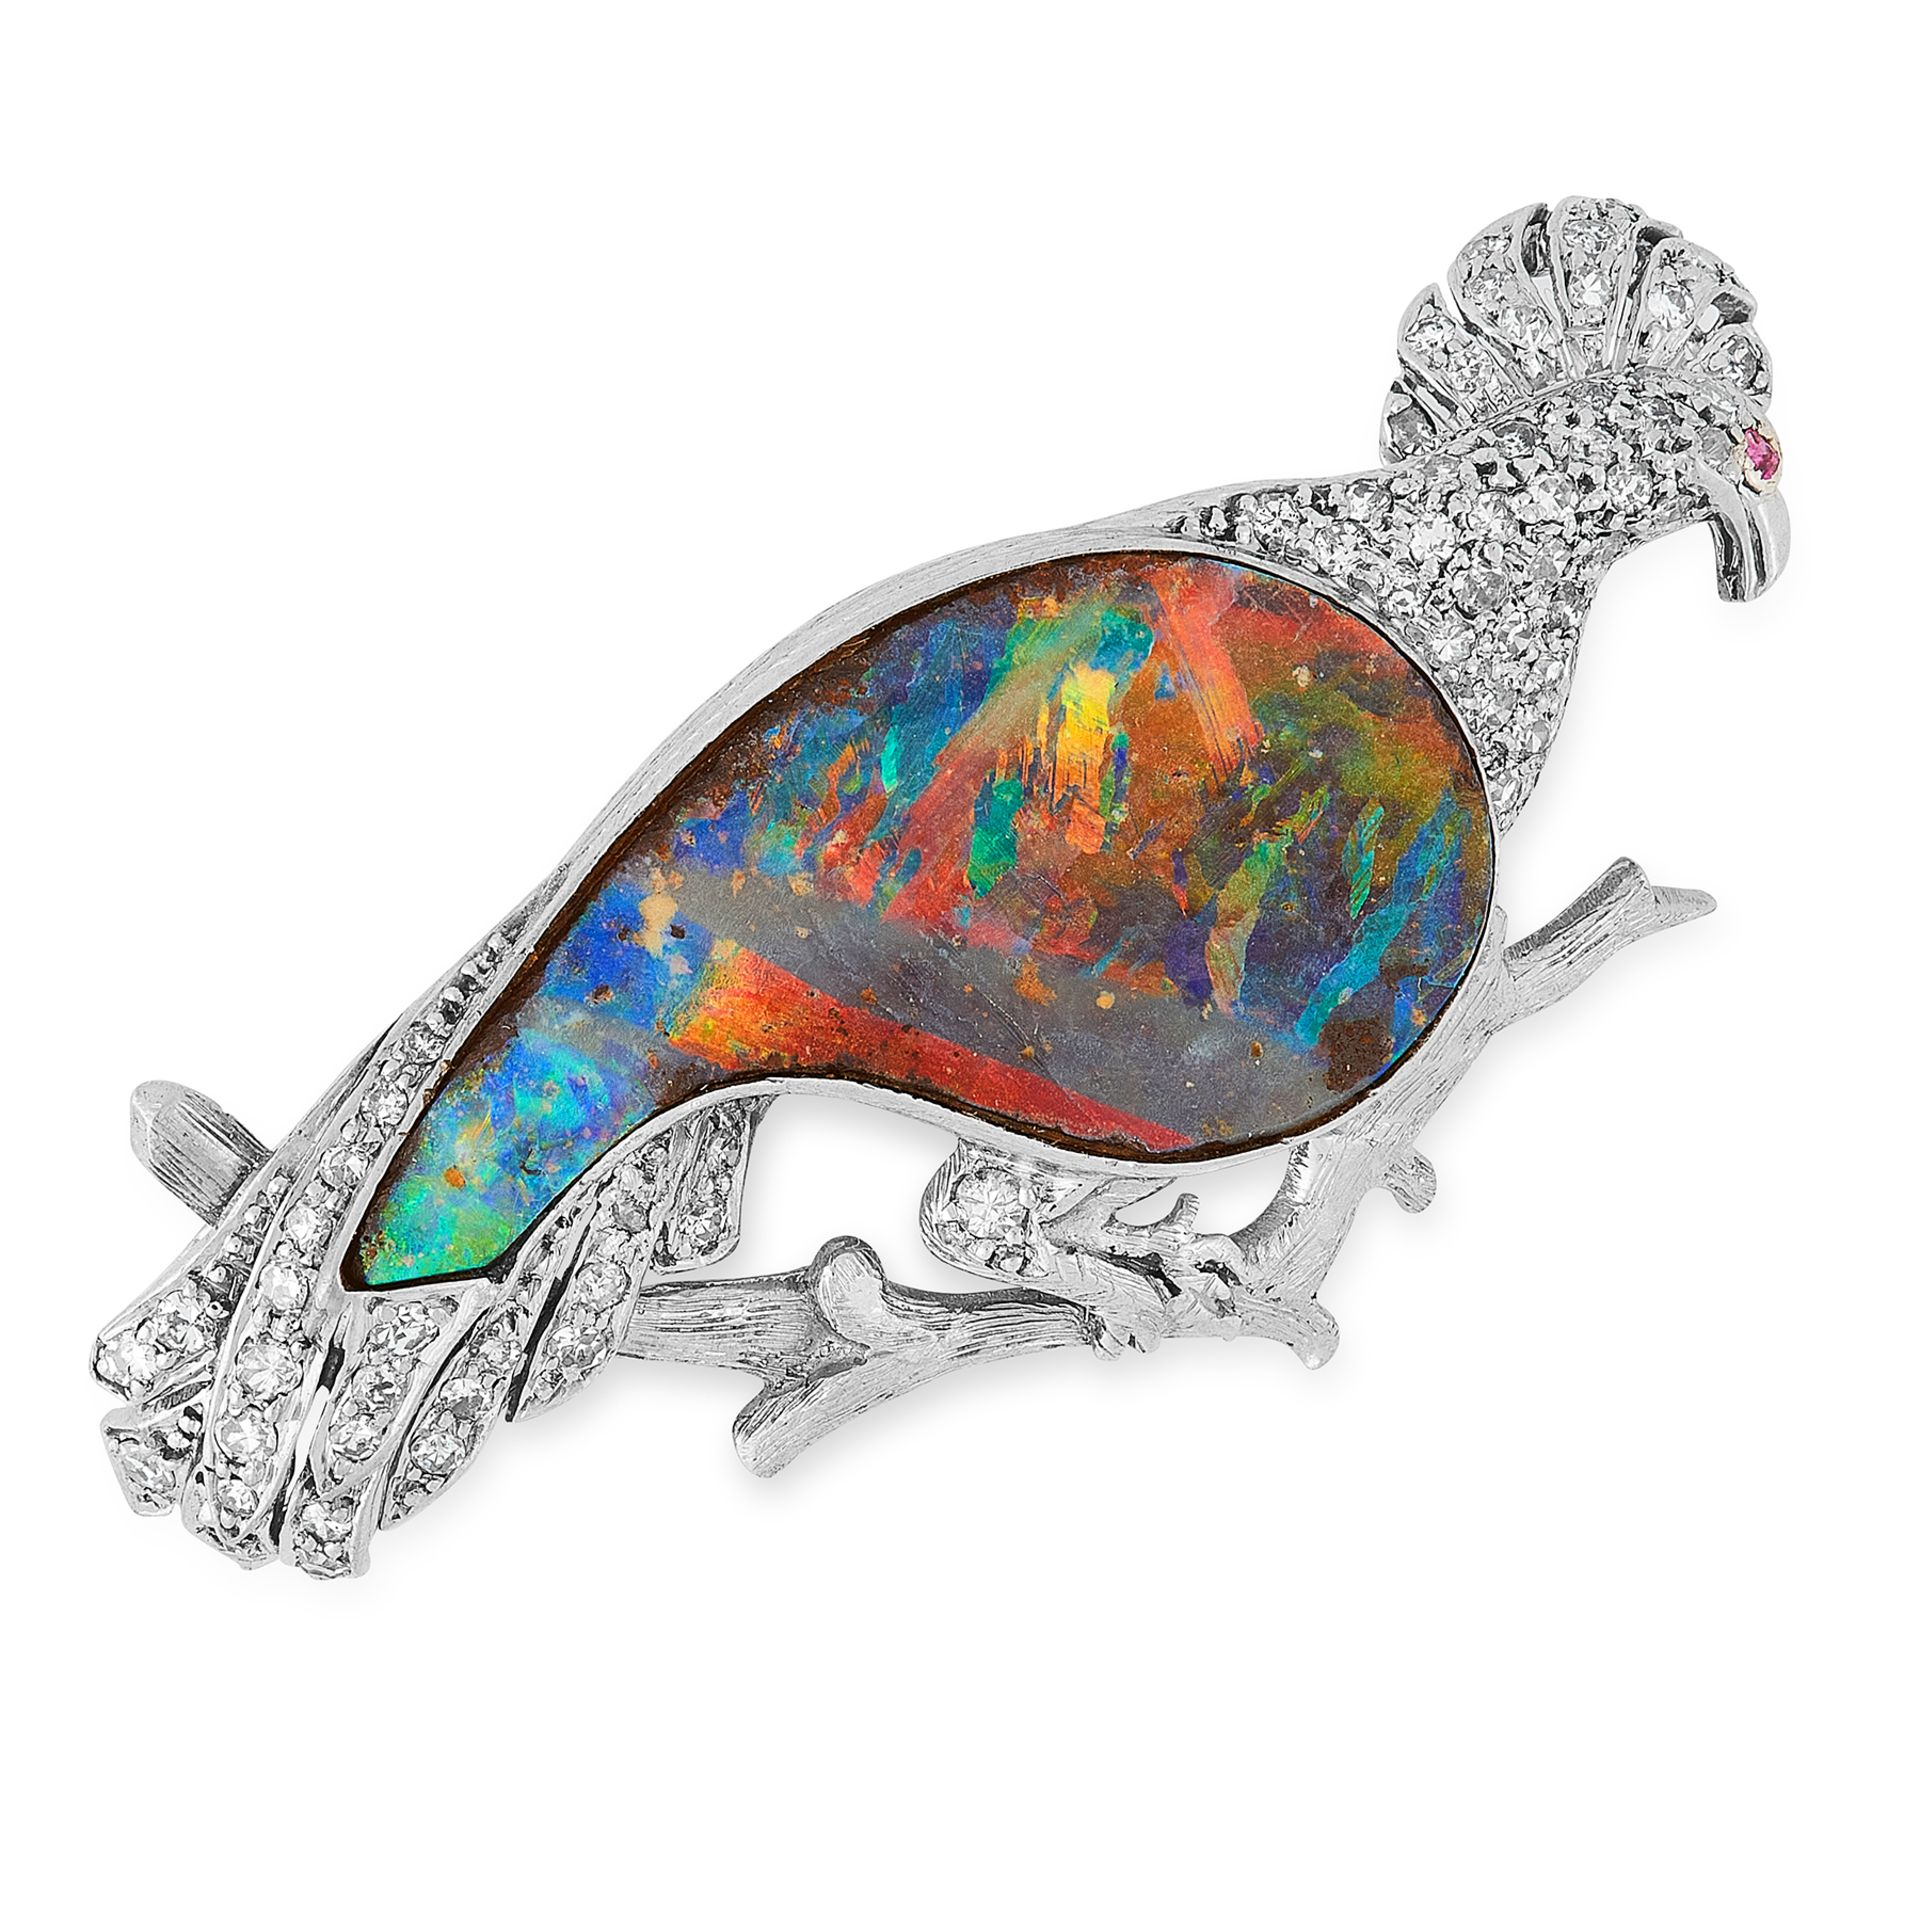 Los 37 - A VINTAGE BLACK OPAL AND DIAMOND BROOCH designed as a bird, the body set with a polished piece of